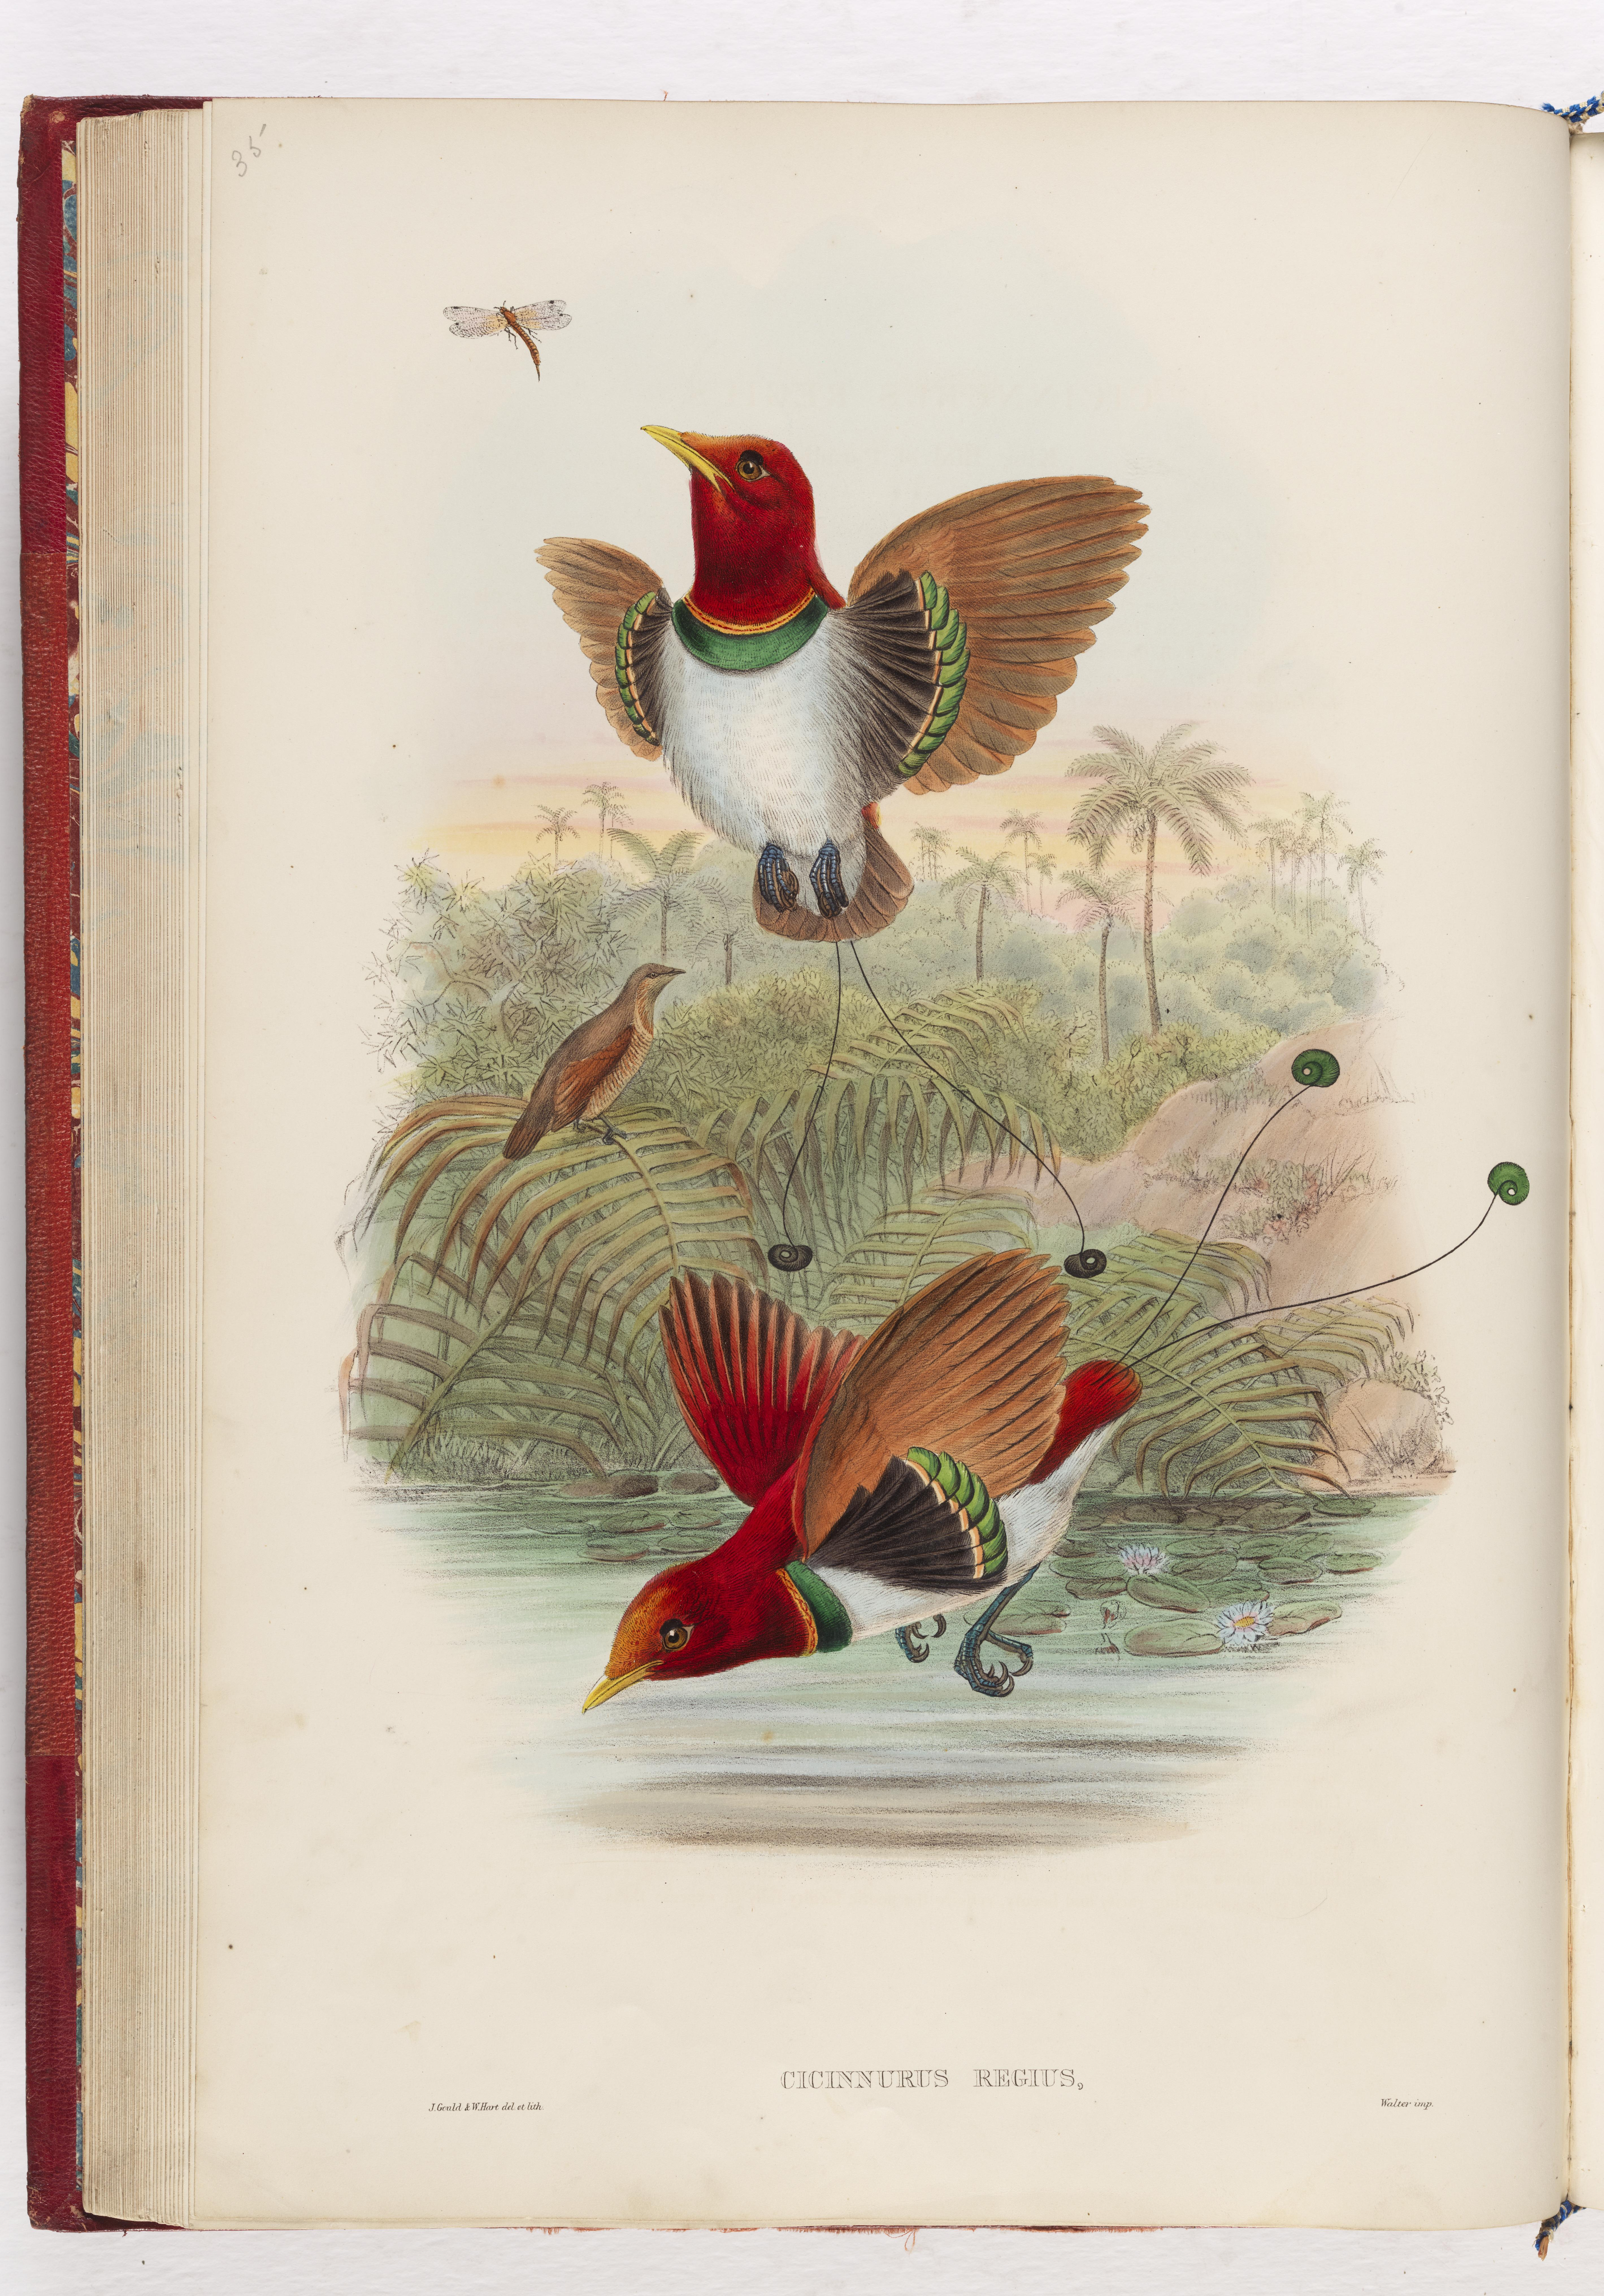 Cicimurus regius, King Bird of Paradise from John Gould's the Birds of New Guinea and the adjacent Papuan islands, London, 1875-1888